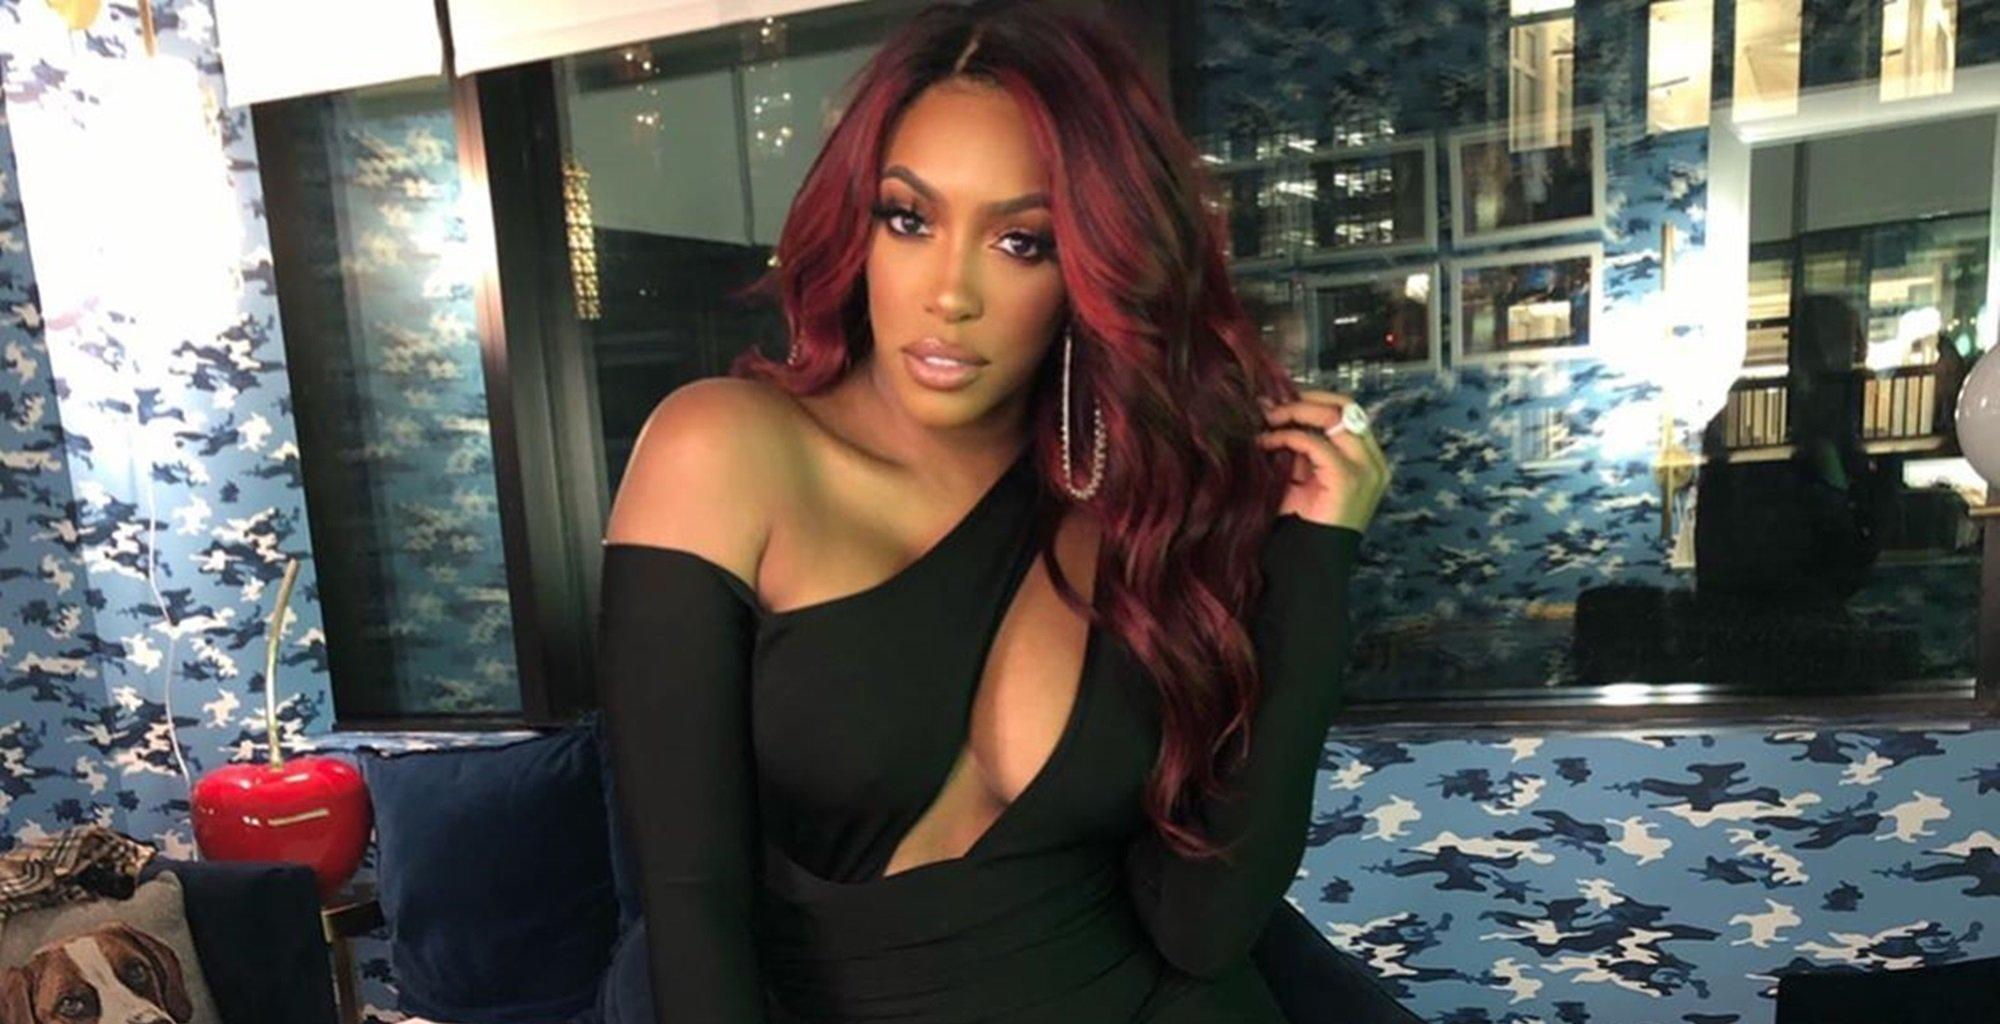 Porsha Williams' Daughter Looks Gorgeous In This Holiday Red Outfit - See The Video